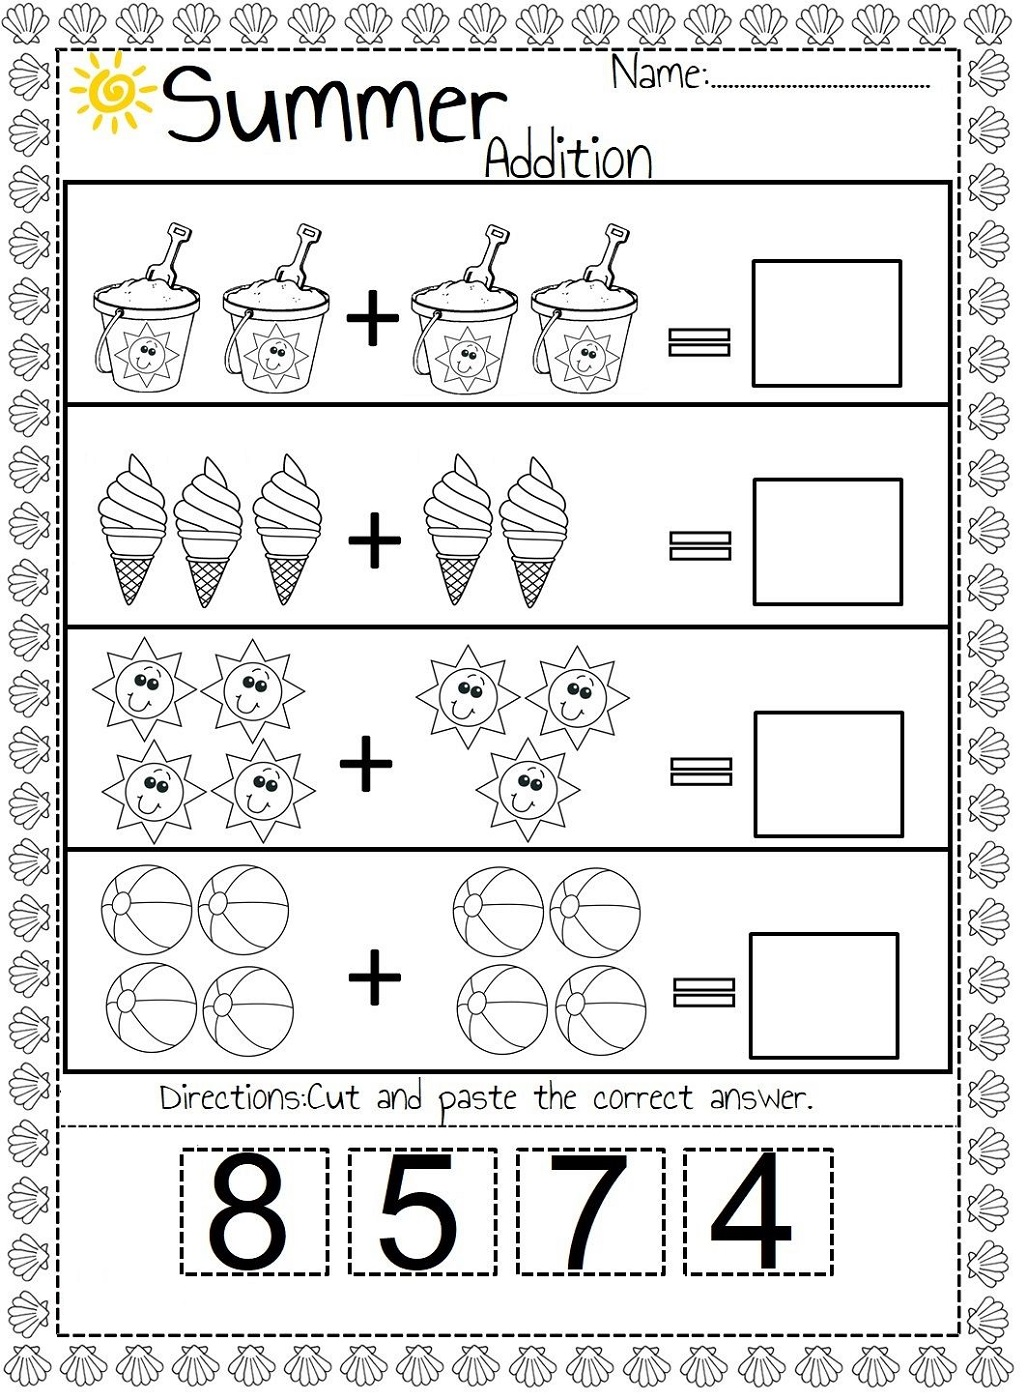 free easy math worksheets for kids